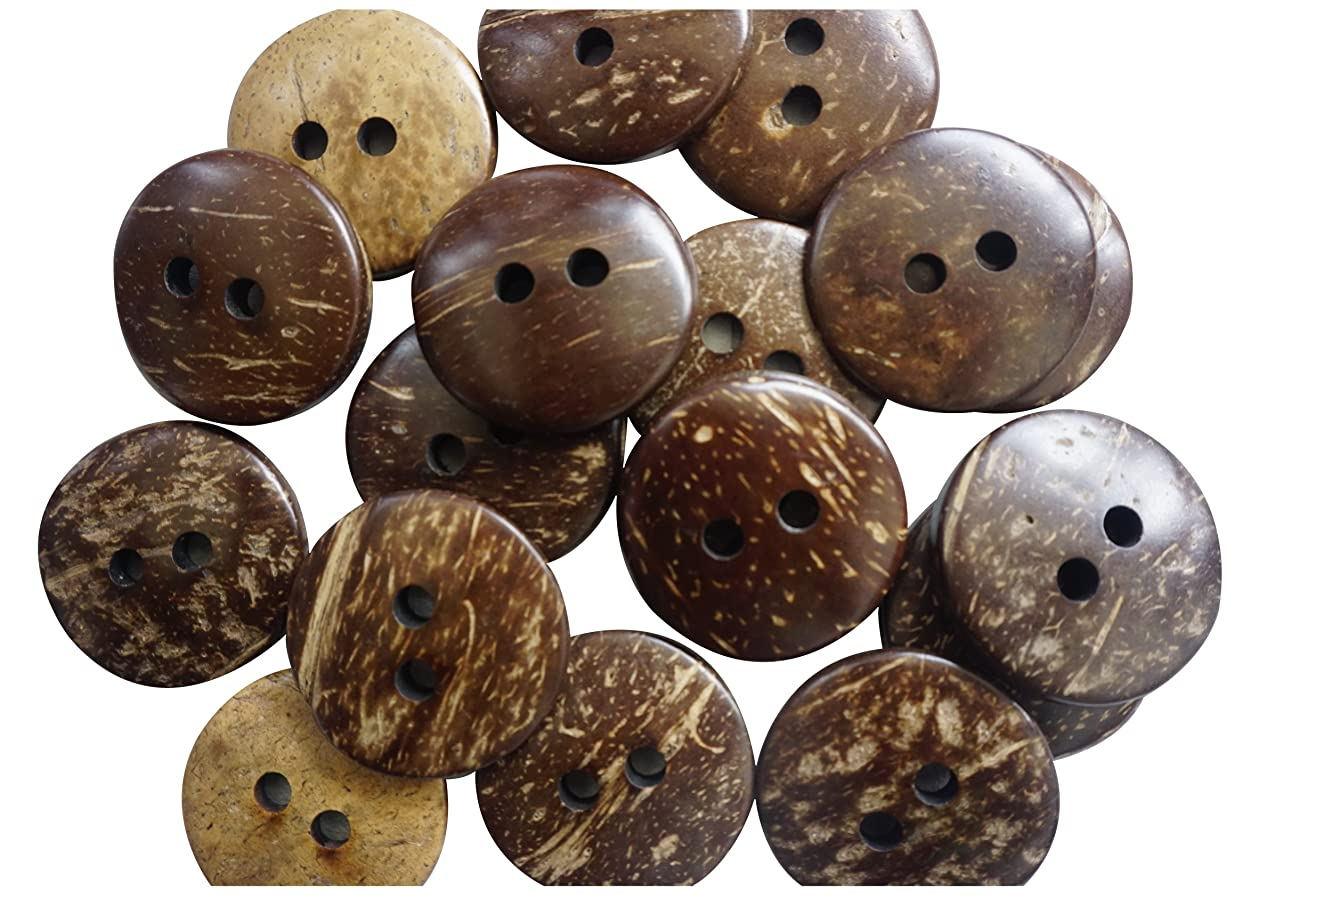 50 Pcs Real Brown Coconut Shell 2 Holes Sewing and Craft Buttons - Large 38mm (1-1/2